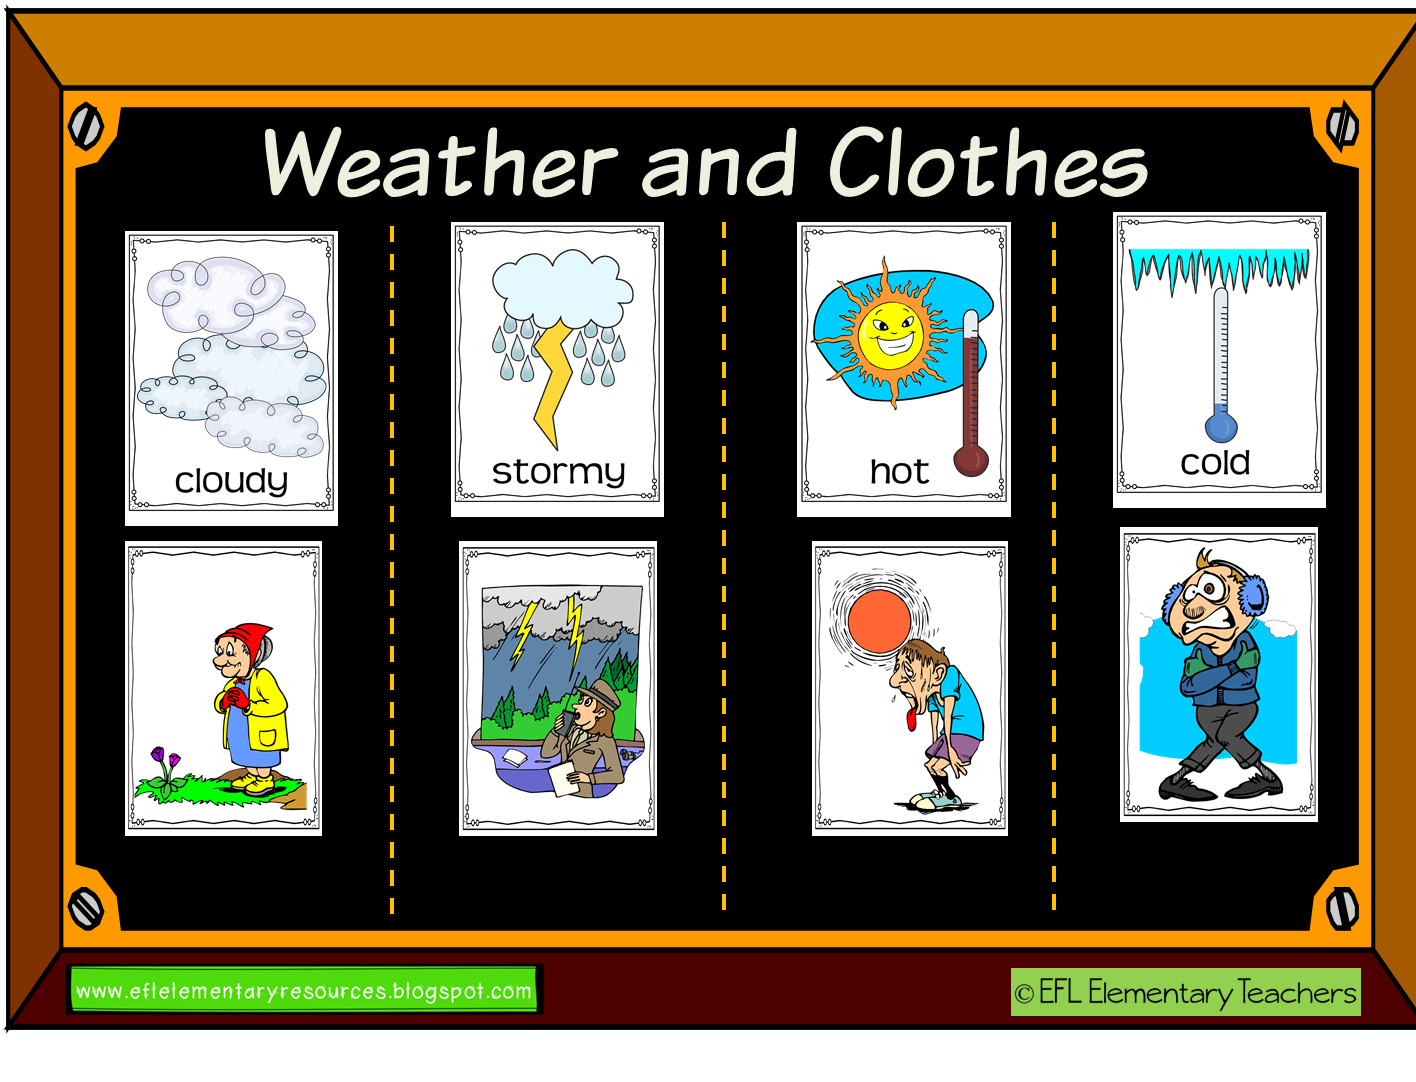 Efl Elementary Teachers Weather And Clothes Themes For